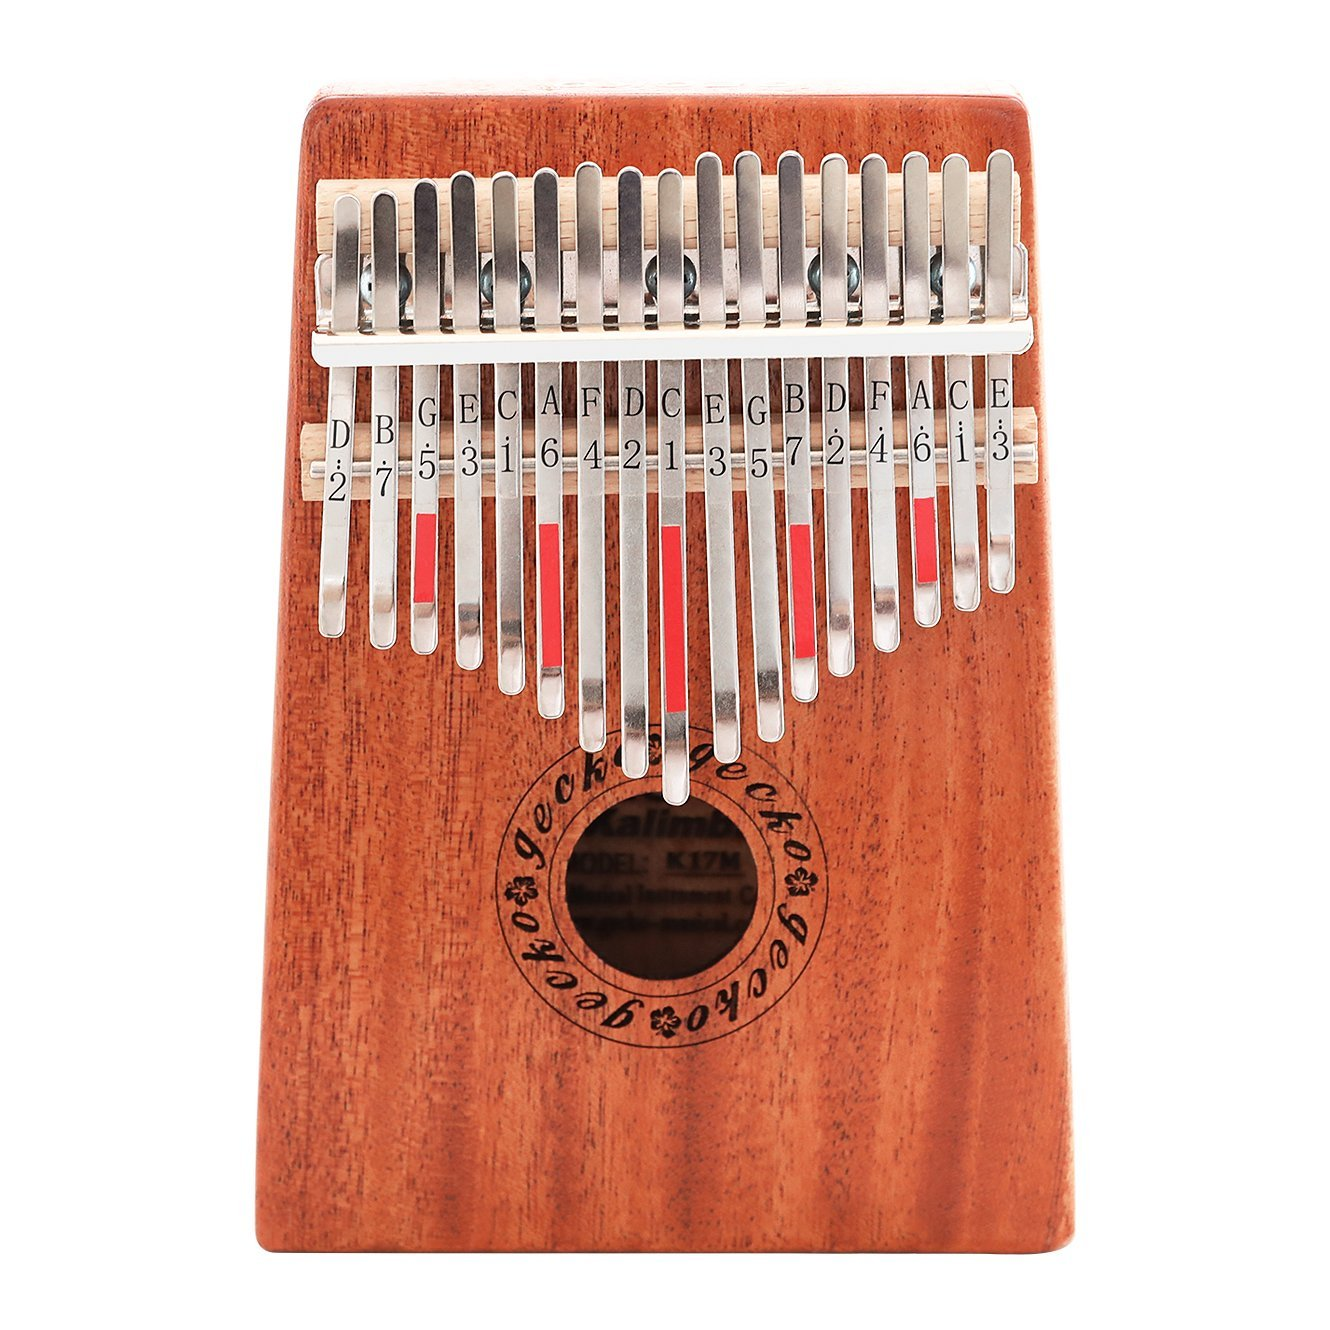 GECKO Kalimba 17 Key with Mahogany Wooden, 17 Note Thumb Piano With Tuning and Note Layout For Playing Western Melodies and Harmonies Easily 4336351395